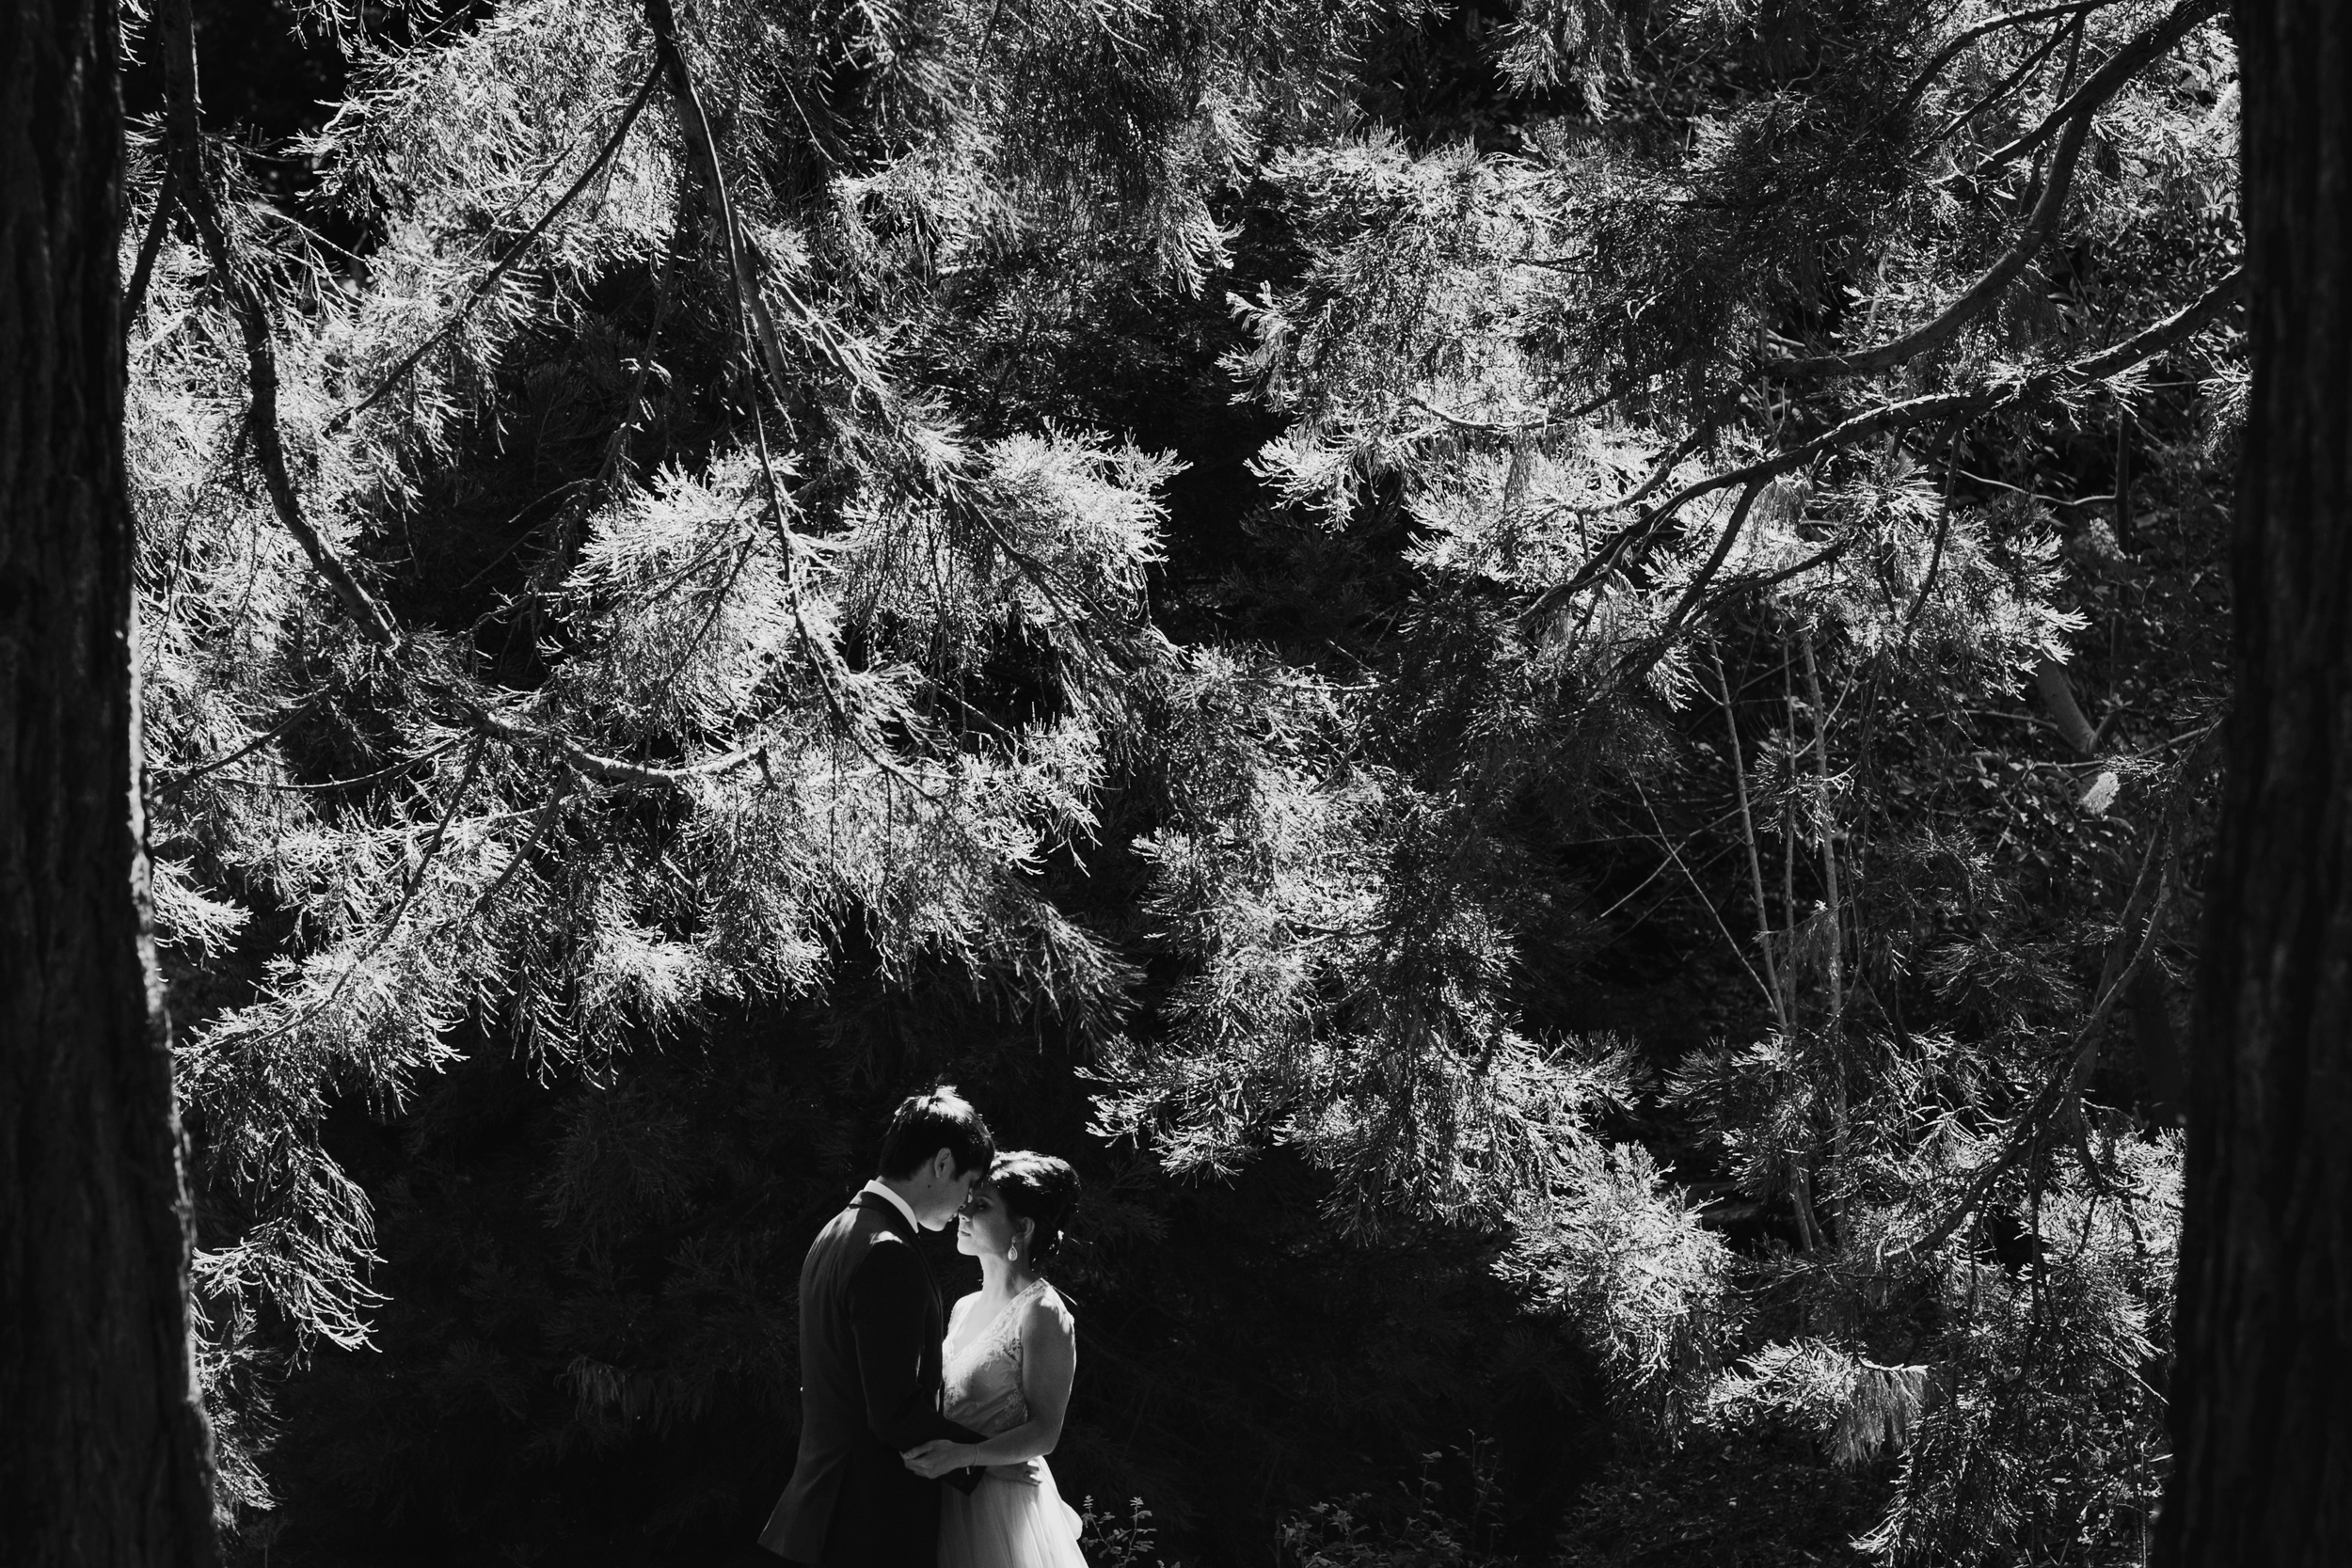 Tilden_Wedding_Berkeley-29.JPG